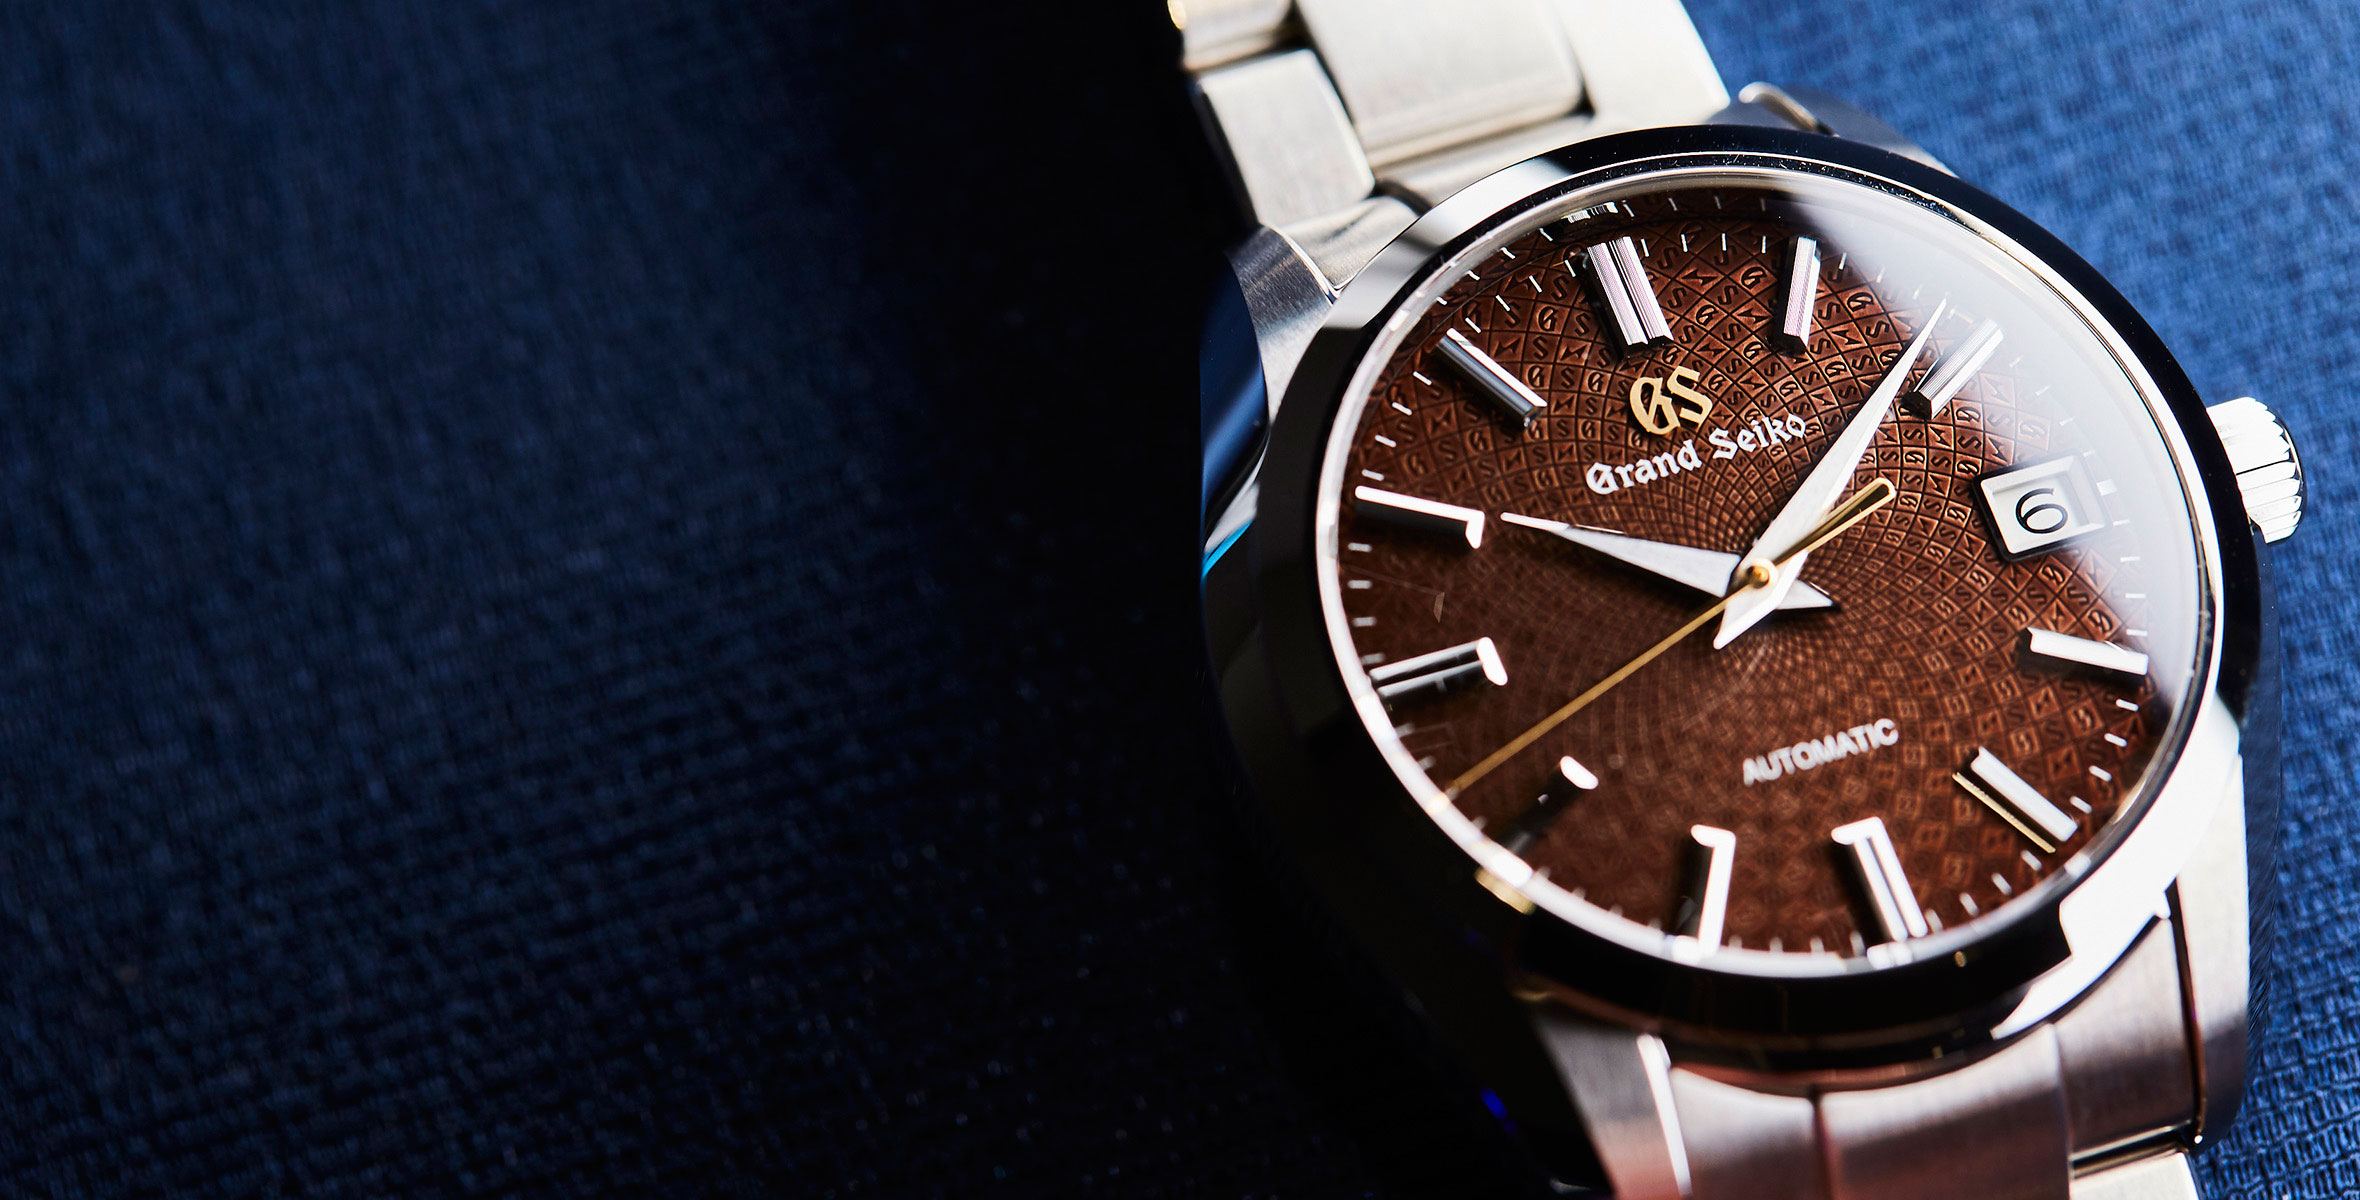 VIDEO: 10 things you've always wanted to know about Grand Seiko, but were too afraid to ask …